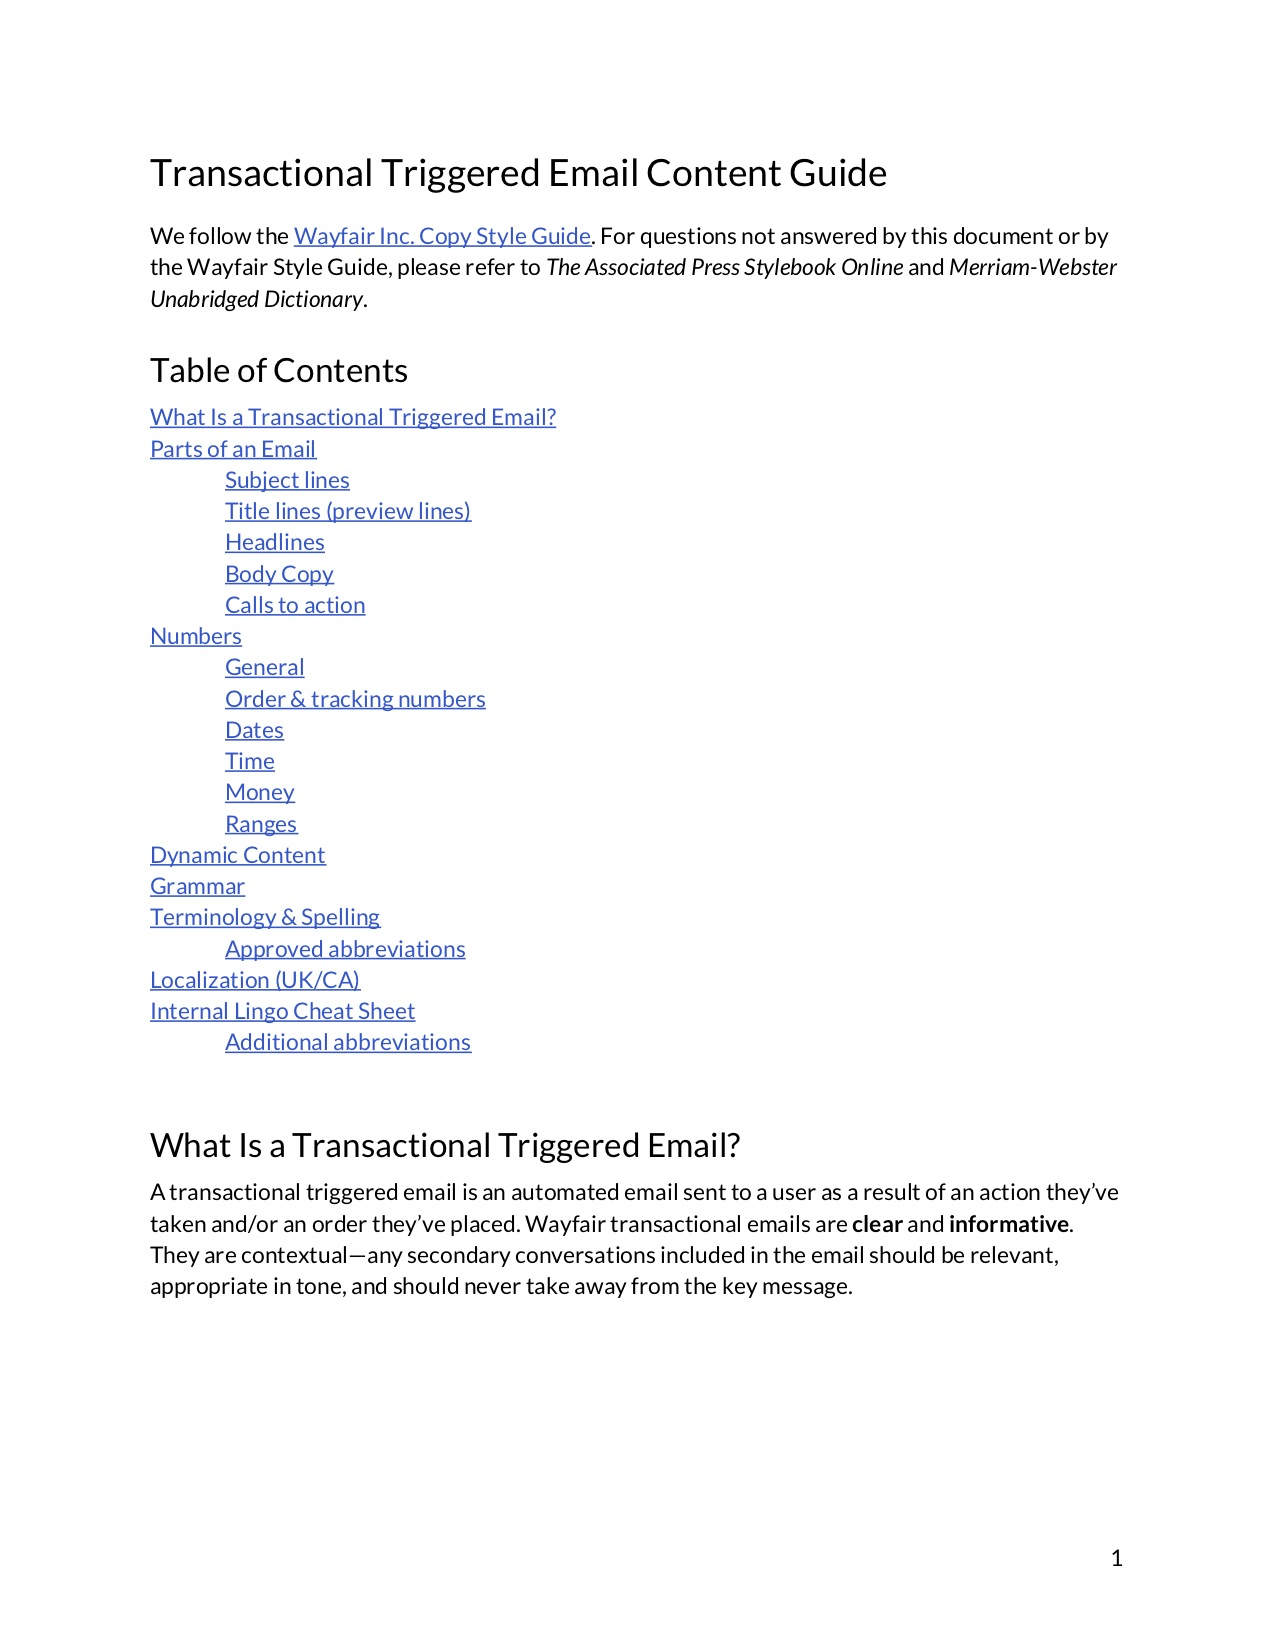 first page of a content guide document with a table of contents